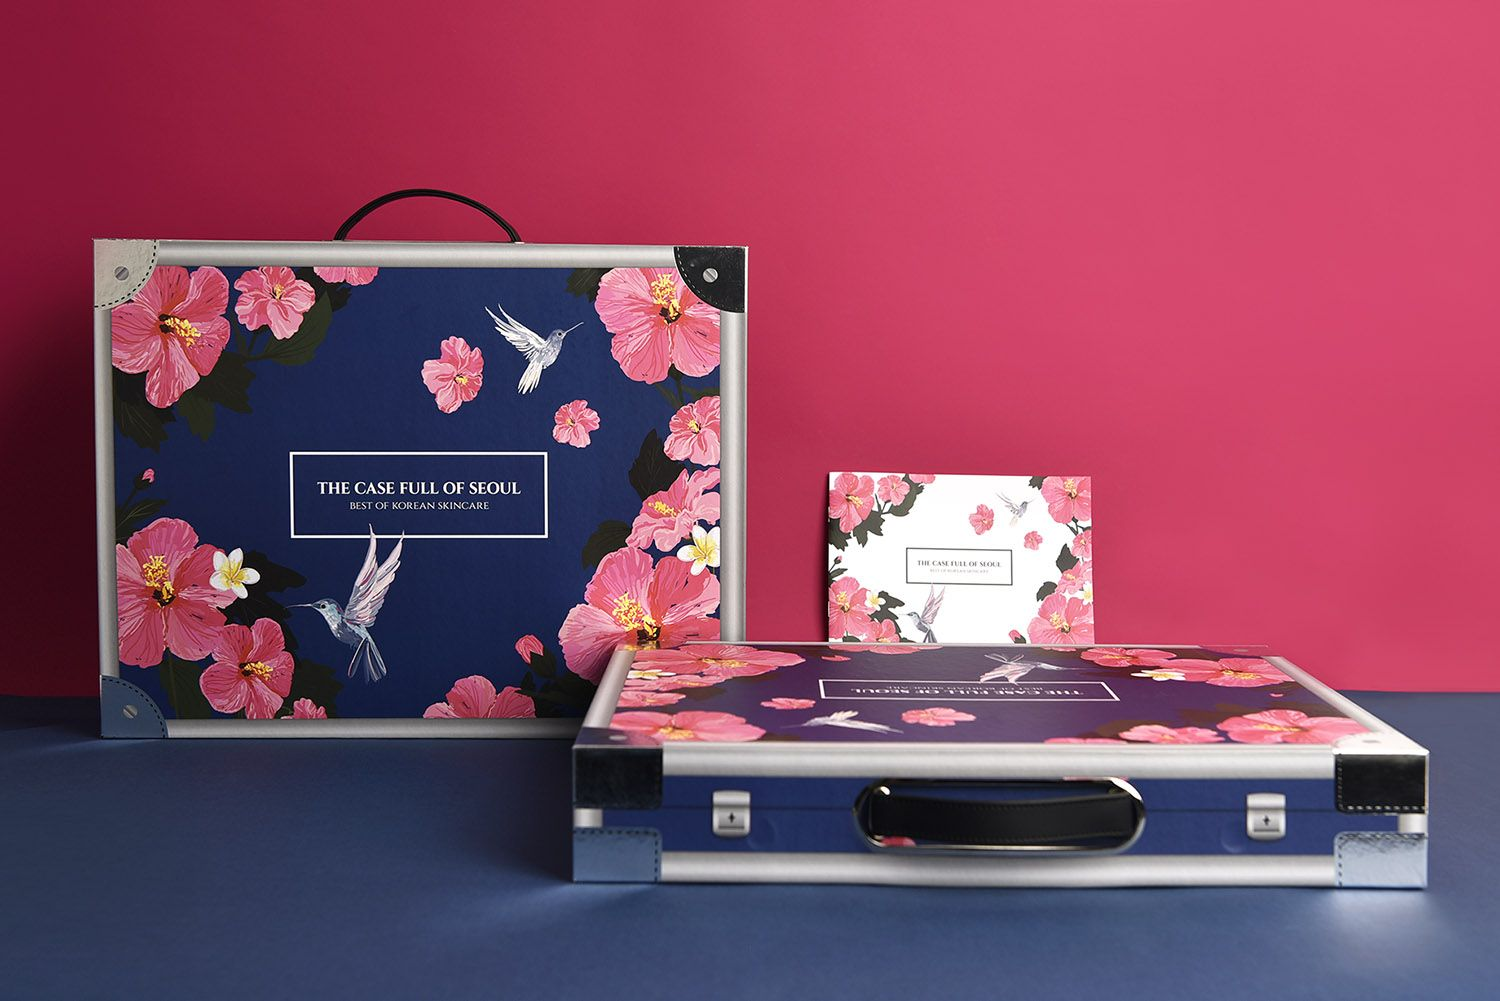 2 K Beauty Package Box Packaging Design Box Design Creative Packaging